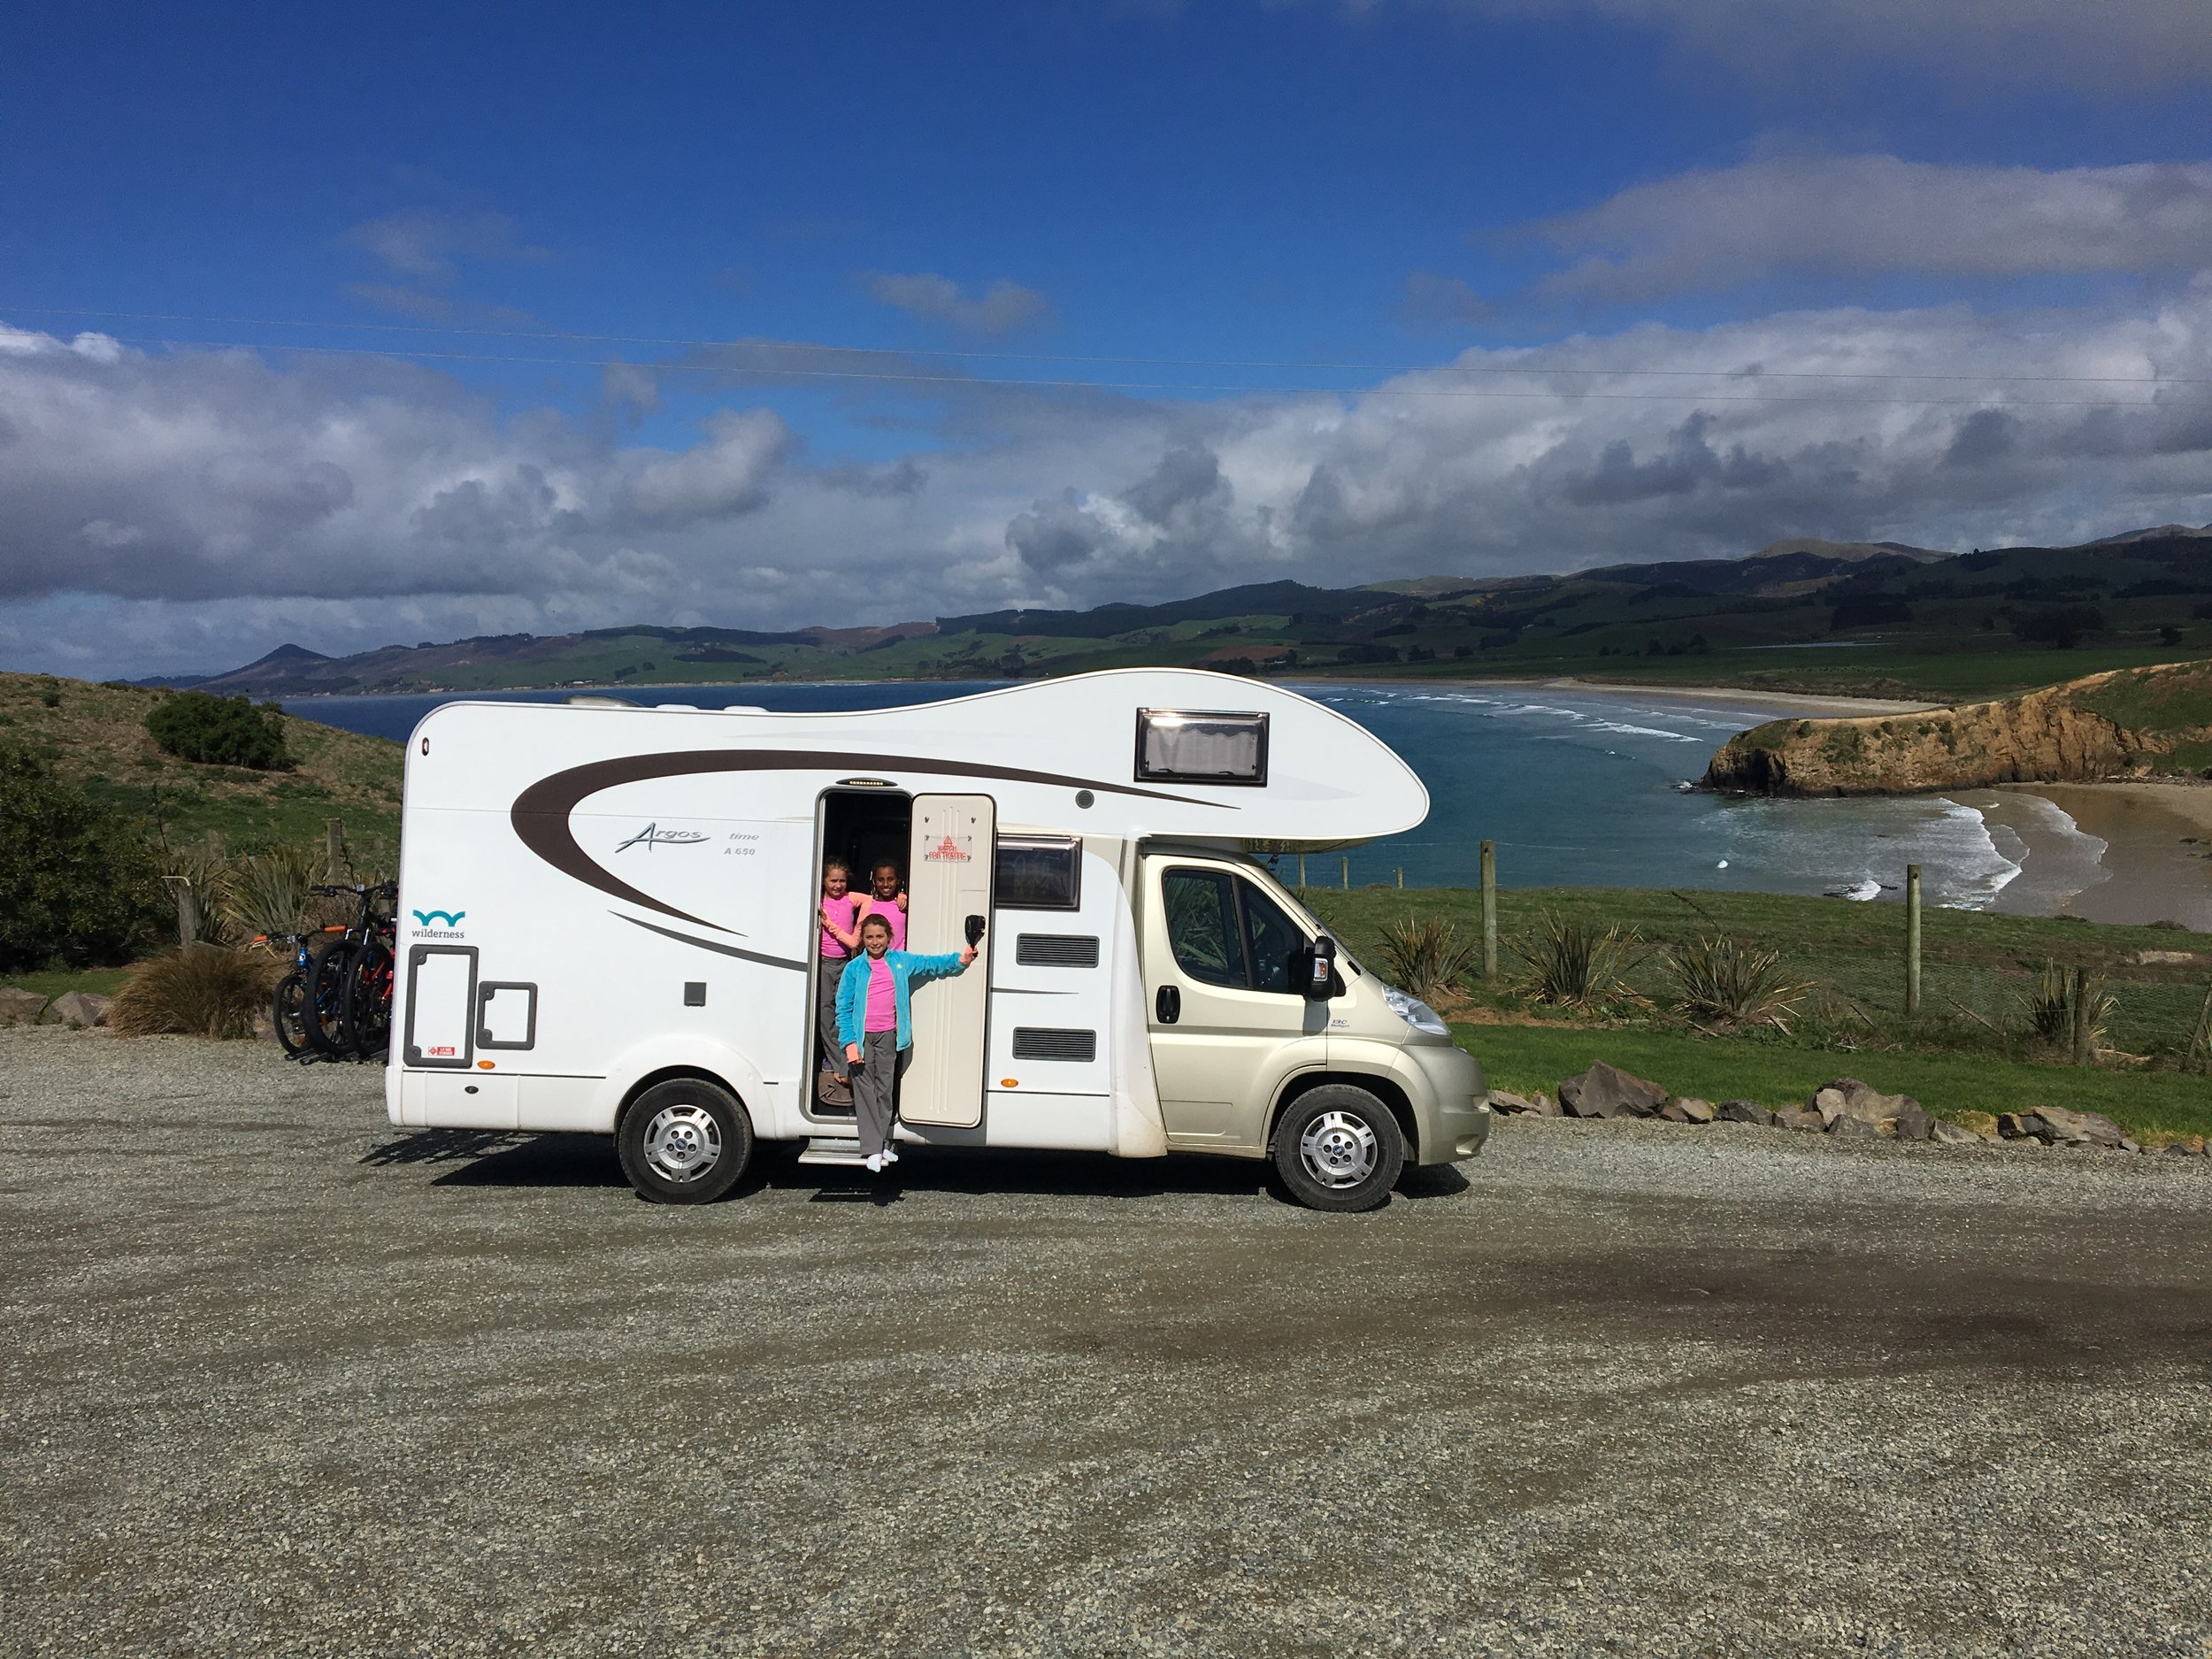 "Our mobile ""home"" for two weeks during our road trip their the beautiful south island of New Zealand. Sleeps 5, carries 4 bicycles, and makes for some very funny memories living in such tight quarters."